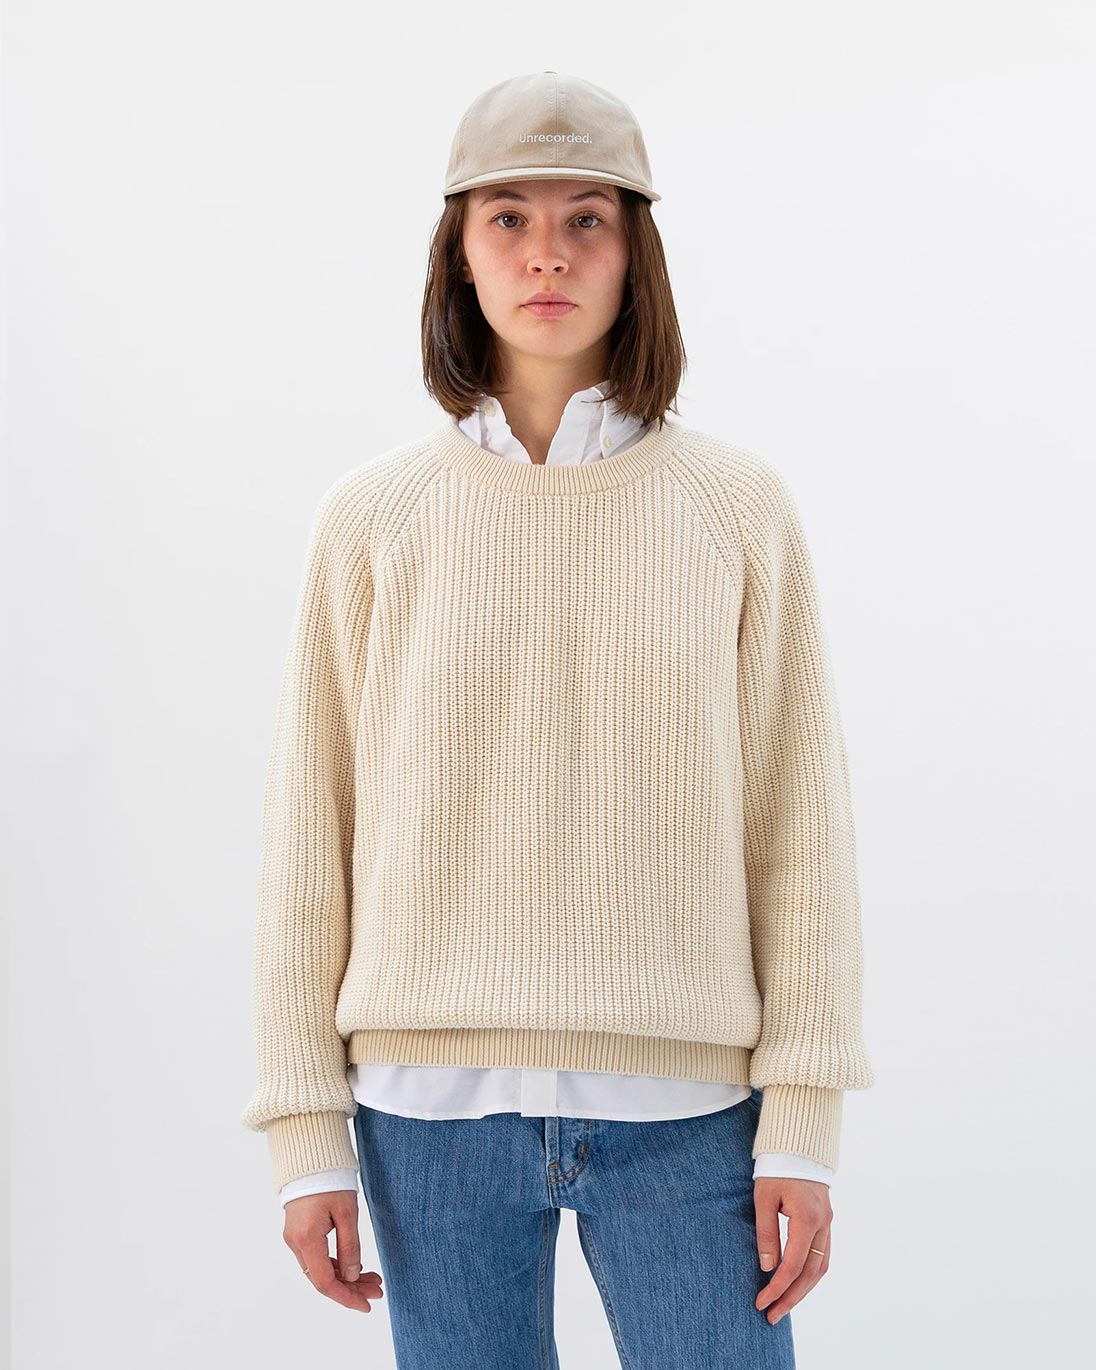 Unrecorded —Knitted sweater